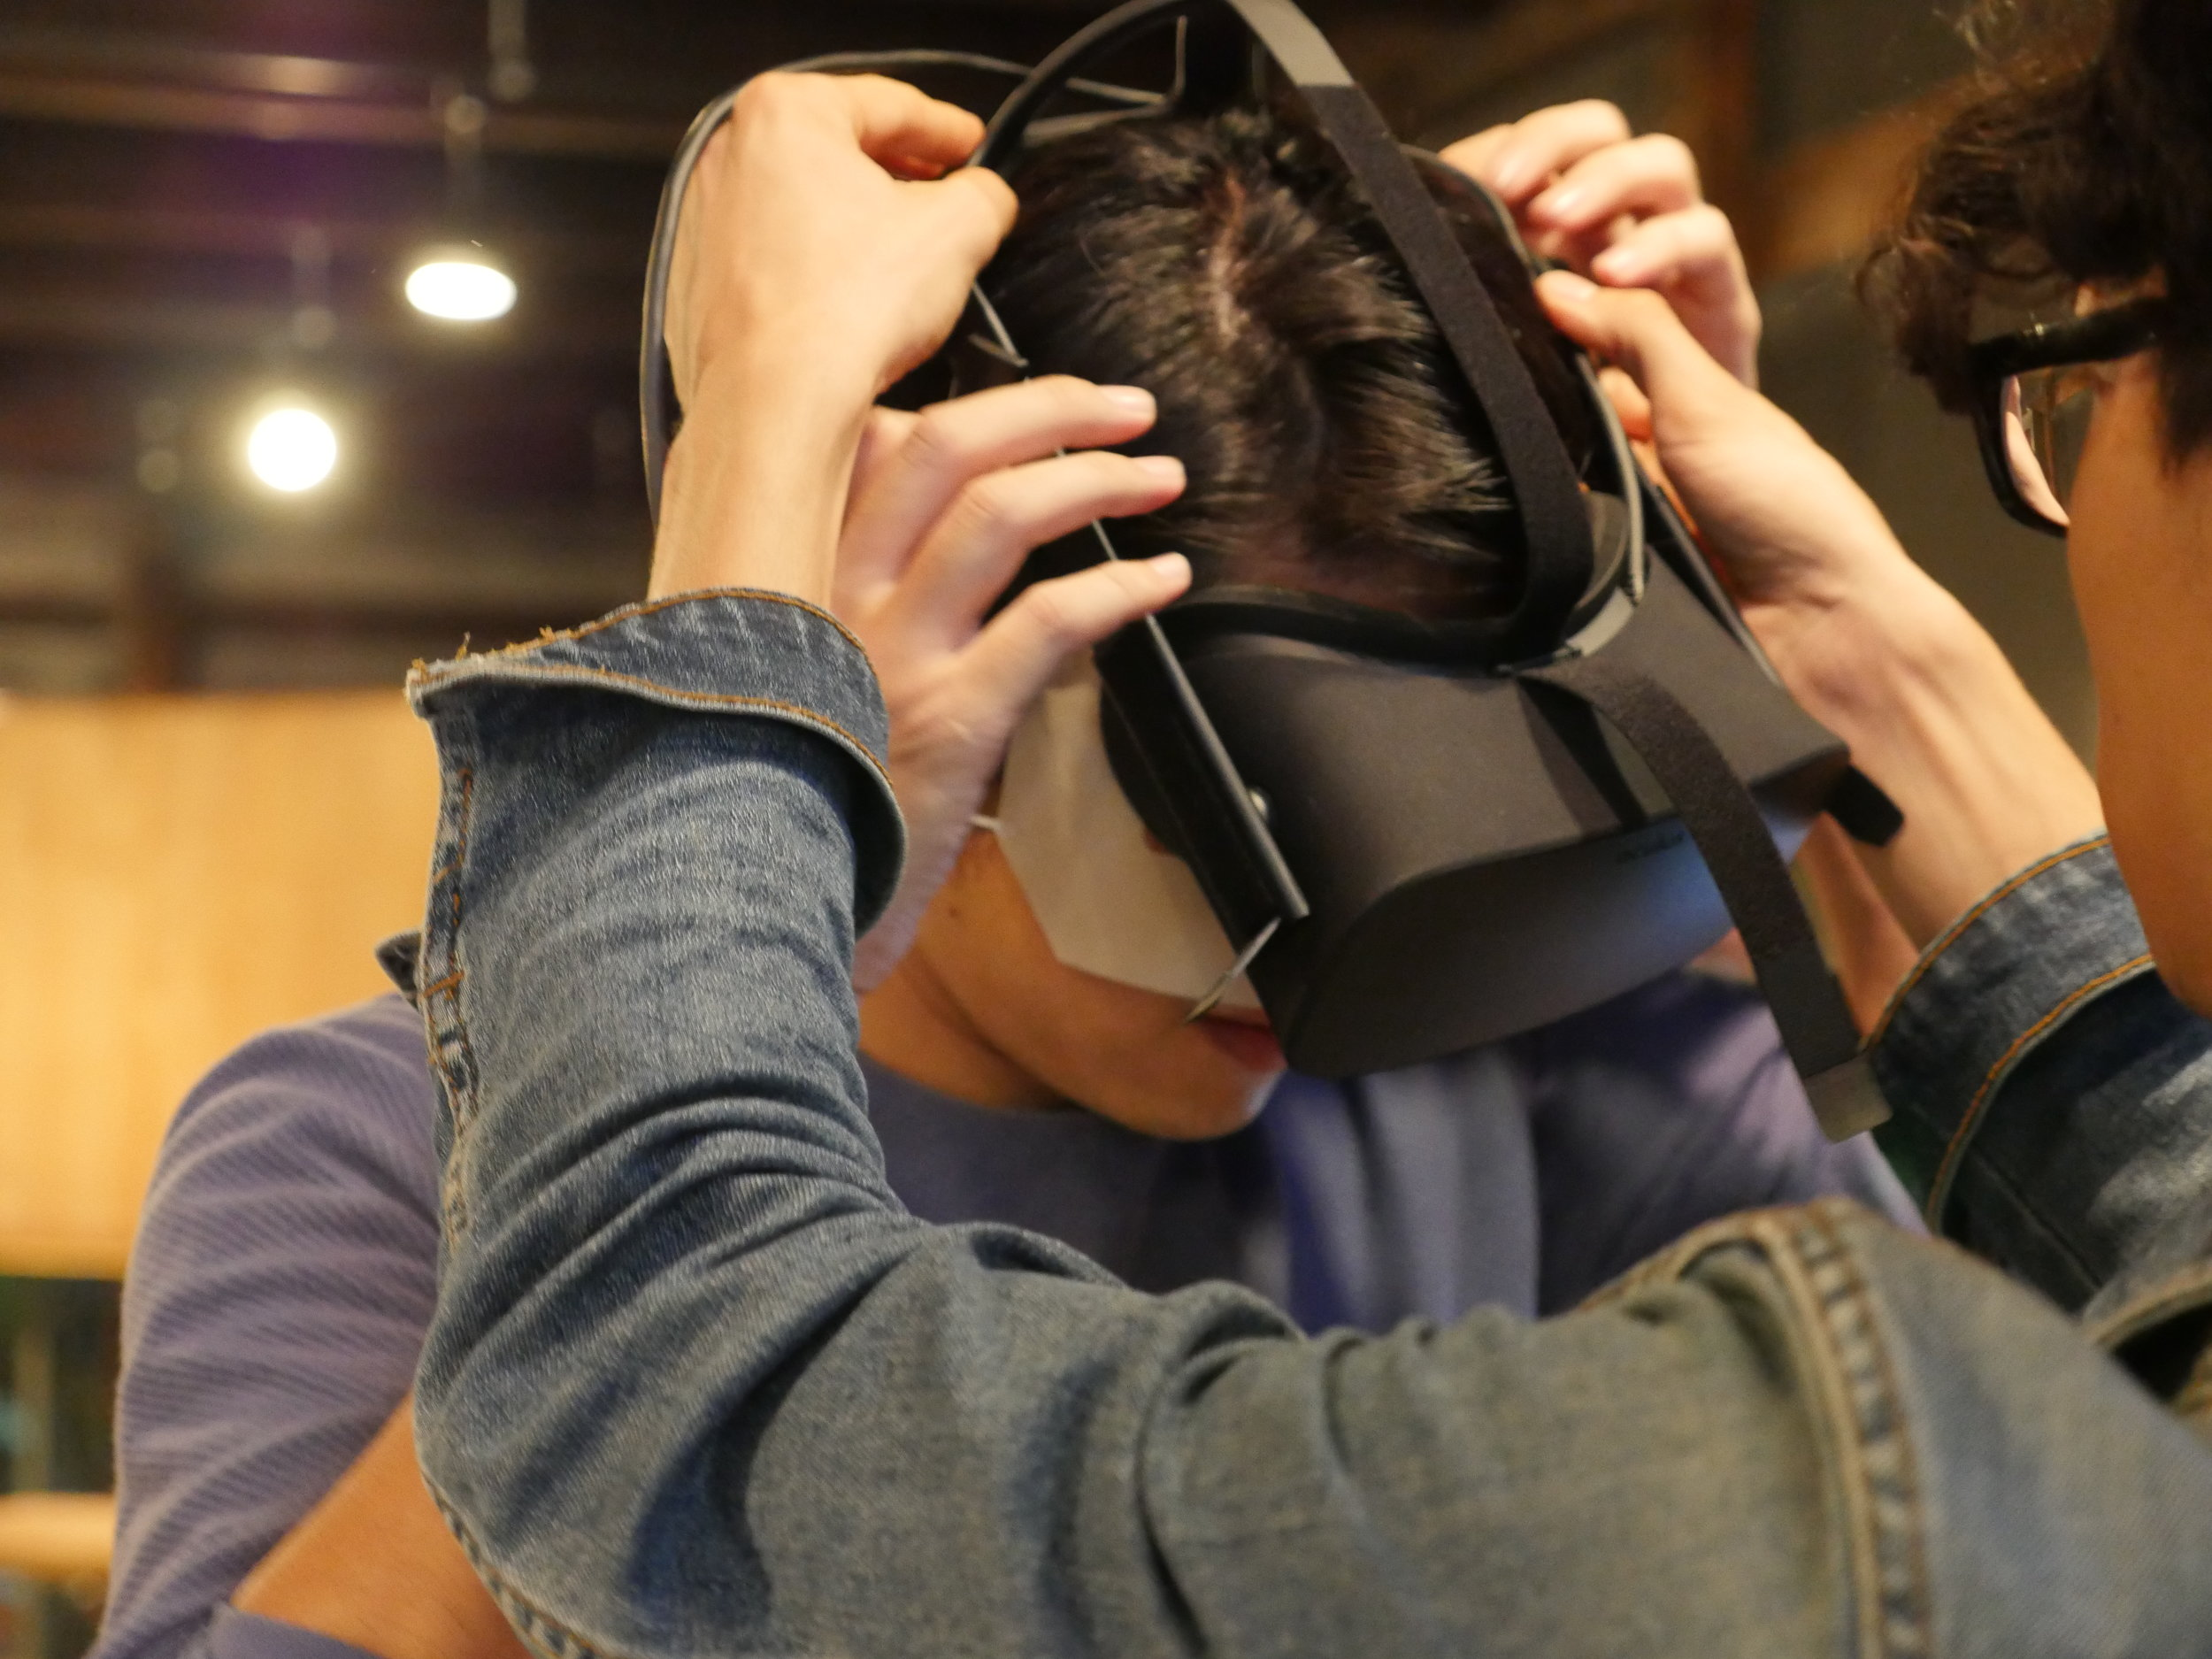 People were lining up to experience Kyoto VR's highly detailed 3D scans of Japanese gardens on the Oculus Rift.